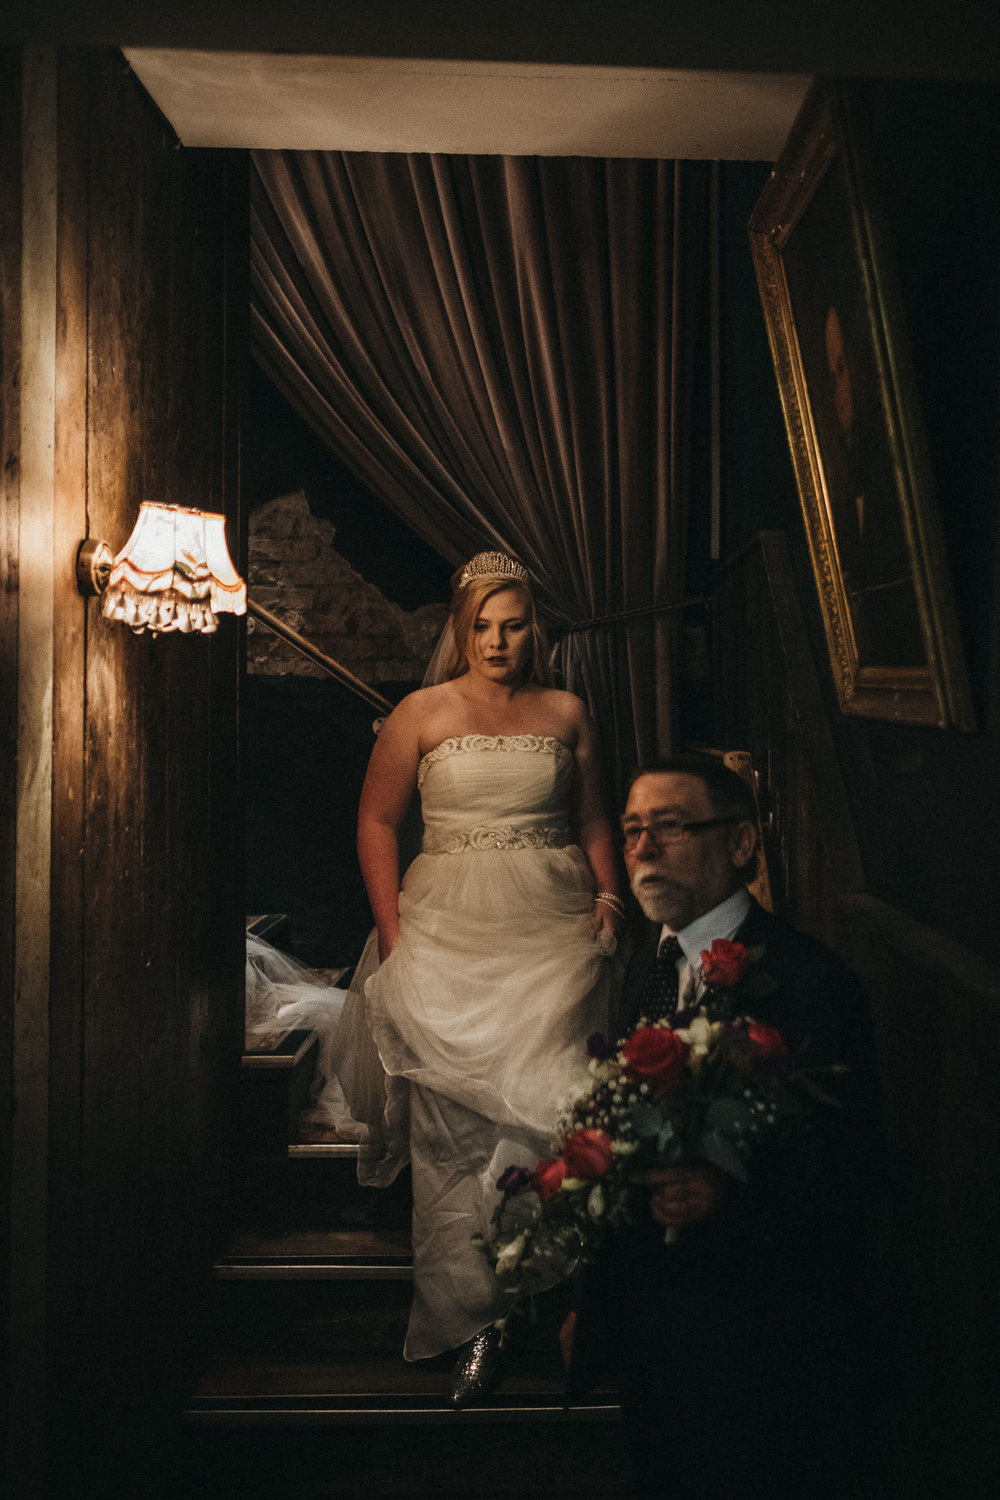 Bride walking down stairs to ceremony in dramatic light at As You Like It Newcastle